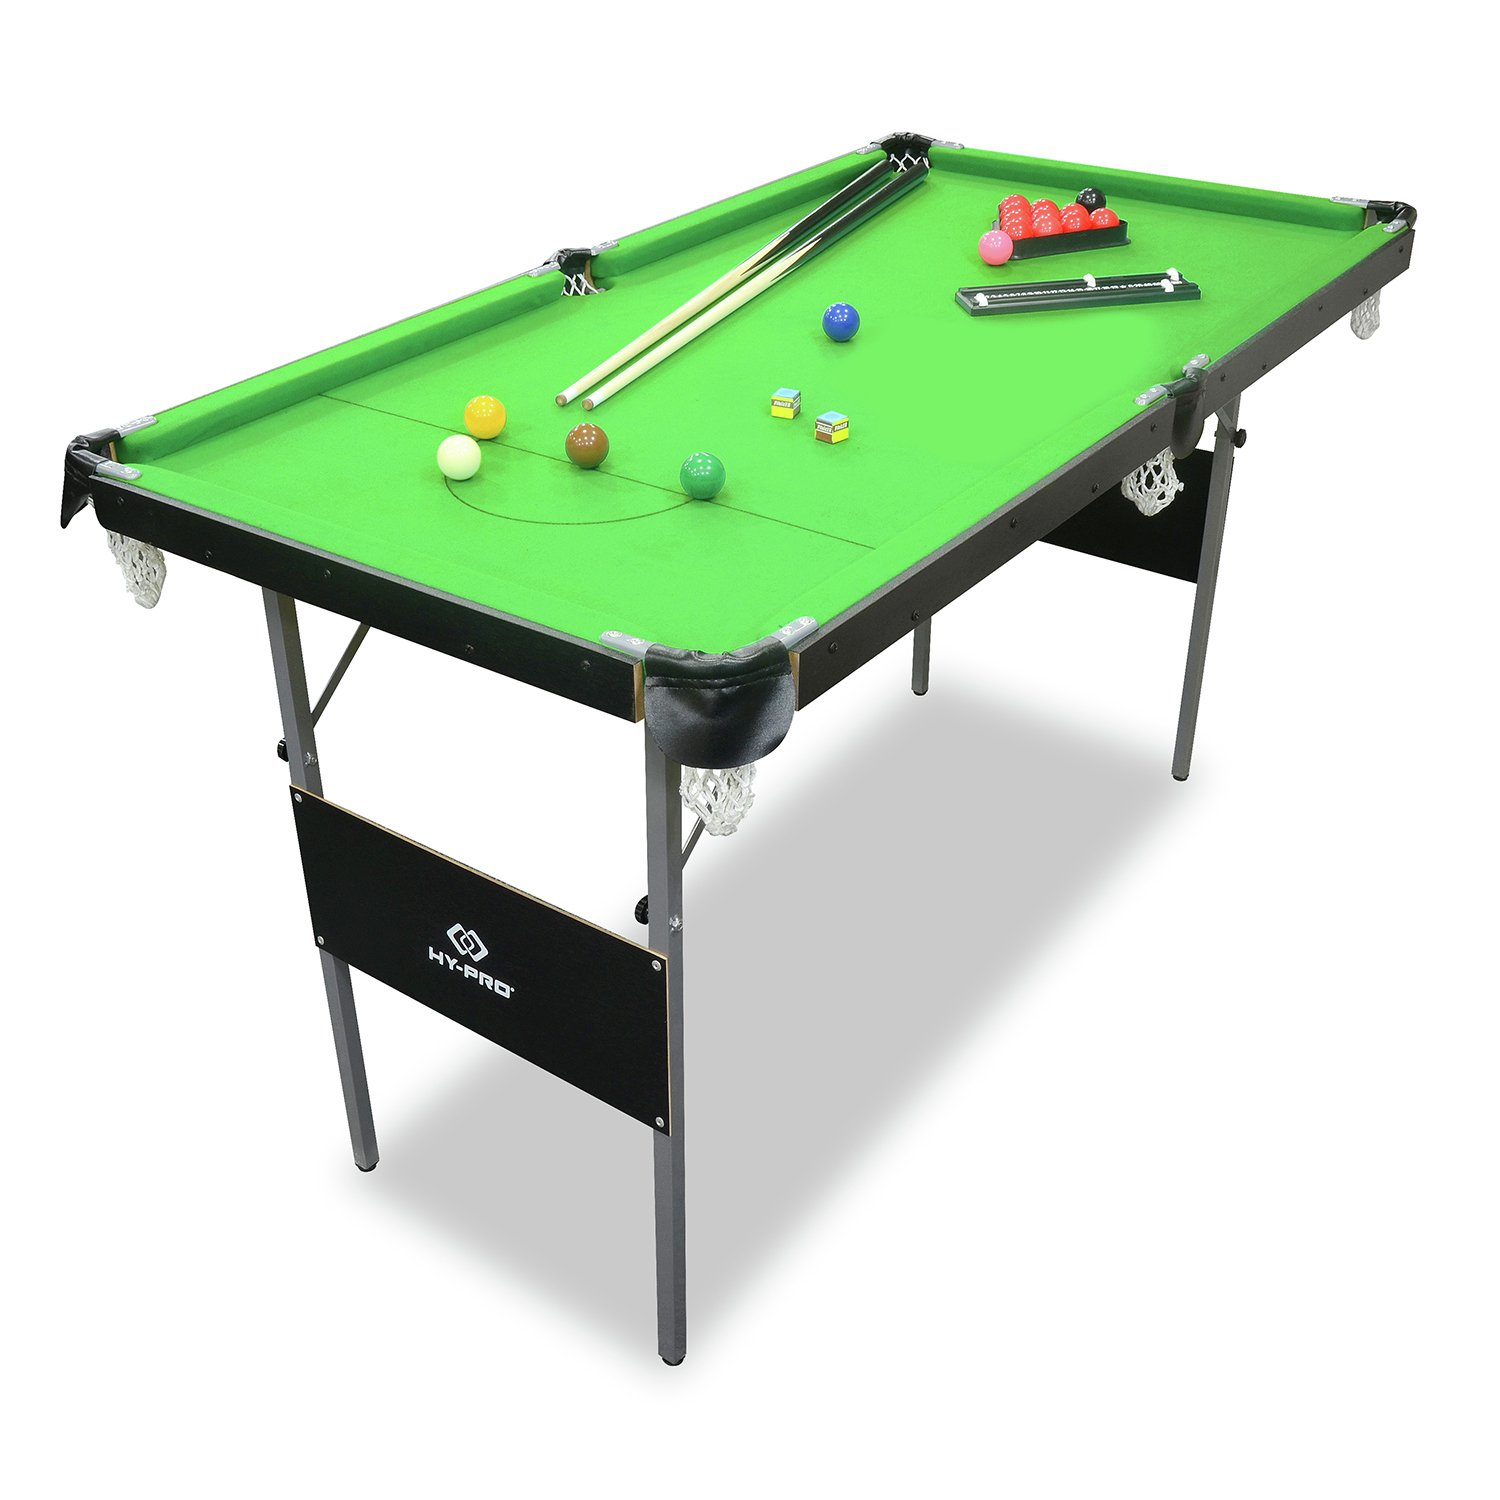 Sale On Snooker And Pool Table 4ft 6in Hy Pro Now